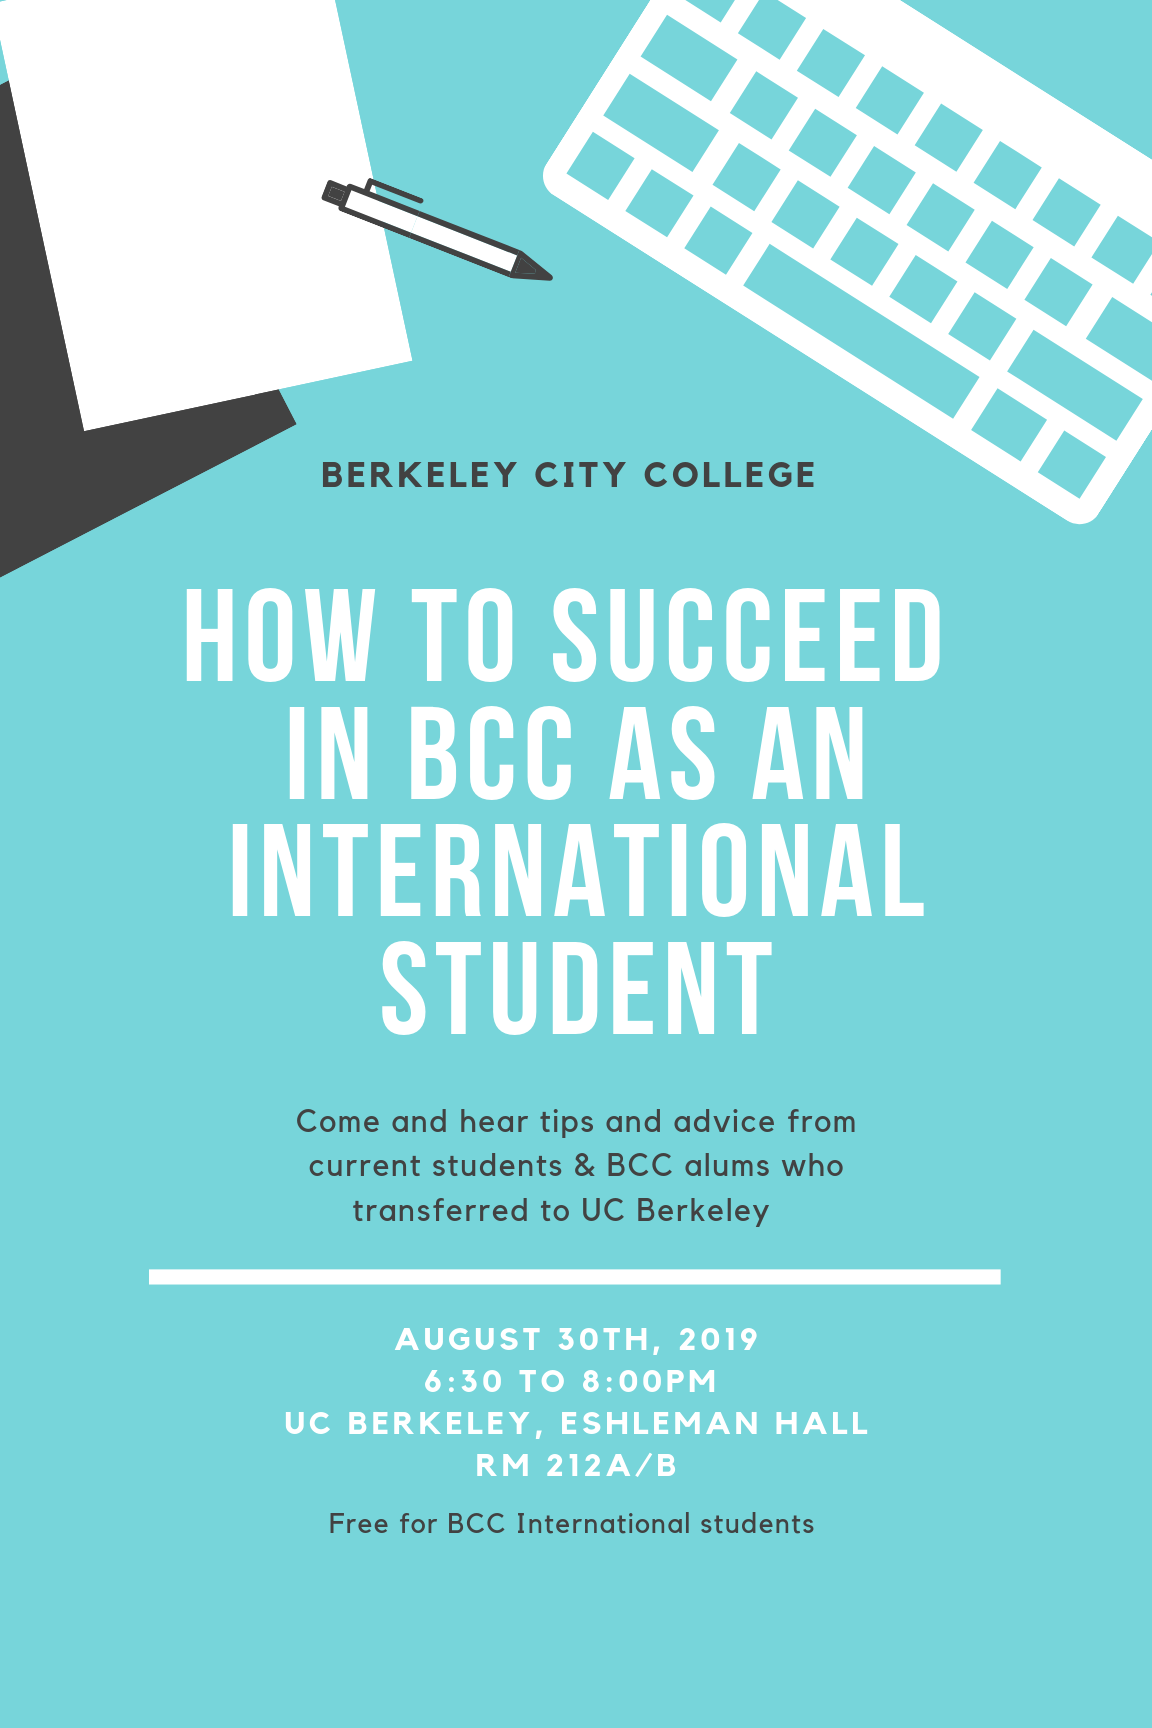 Copy of BCC how to succeed (2) (1).png